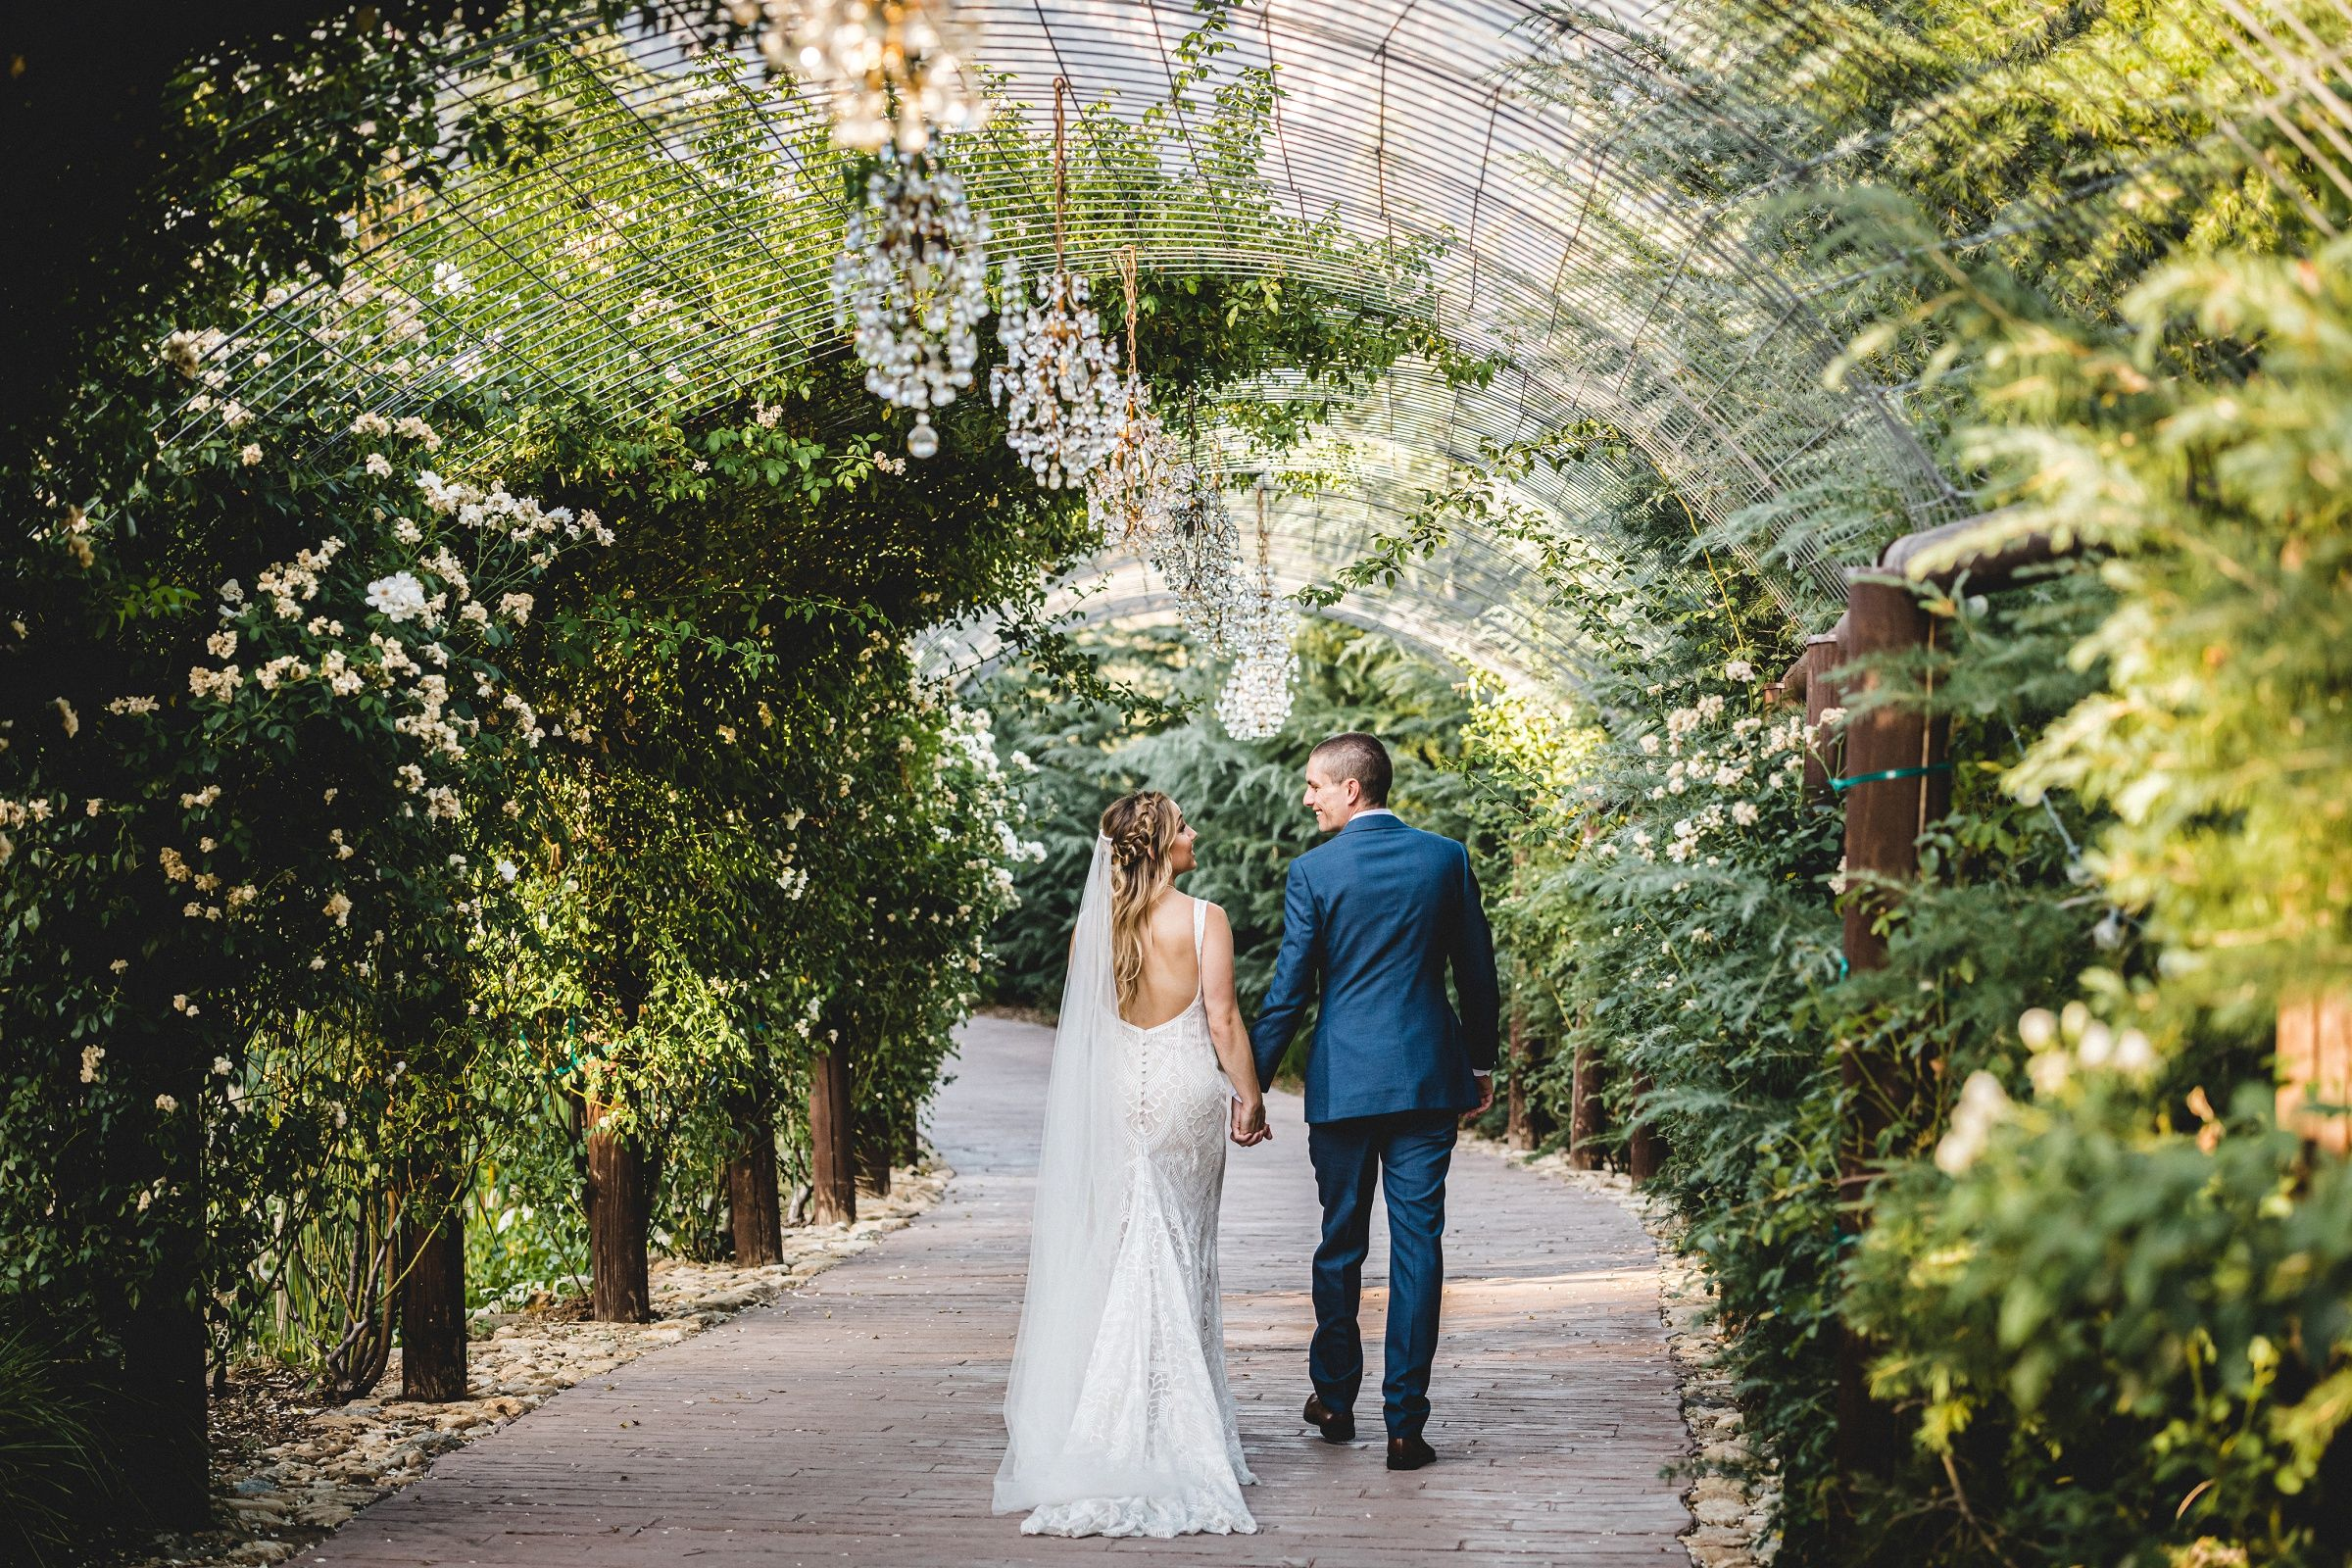 Serendipity Gardens Wedding In 2020 Serendipity Garden Weddings Garden Wedding Venues California Garden Wedding Venue